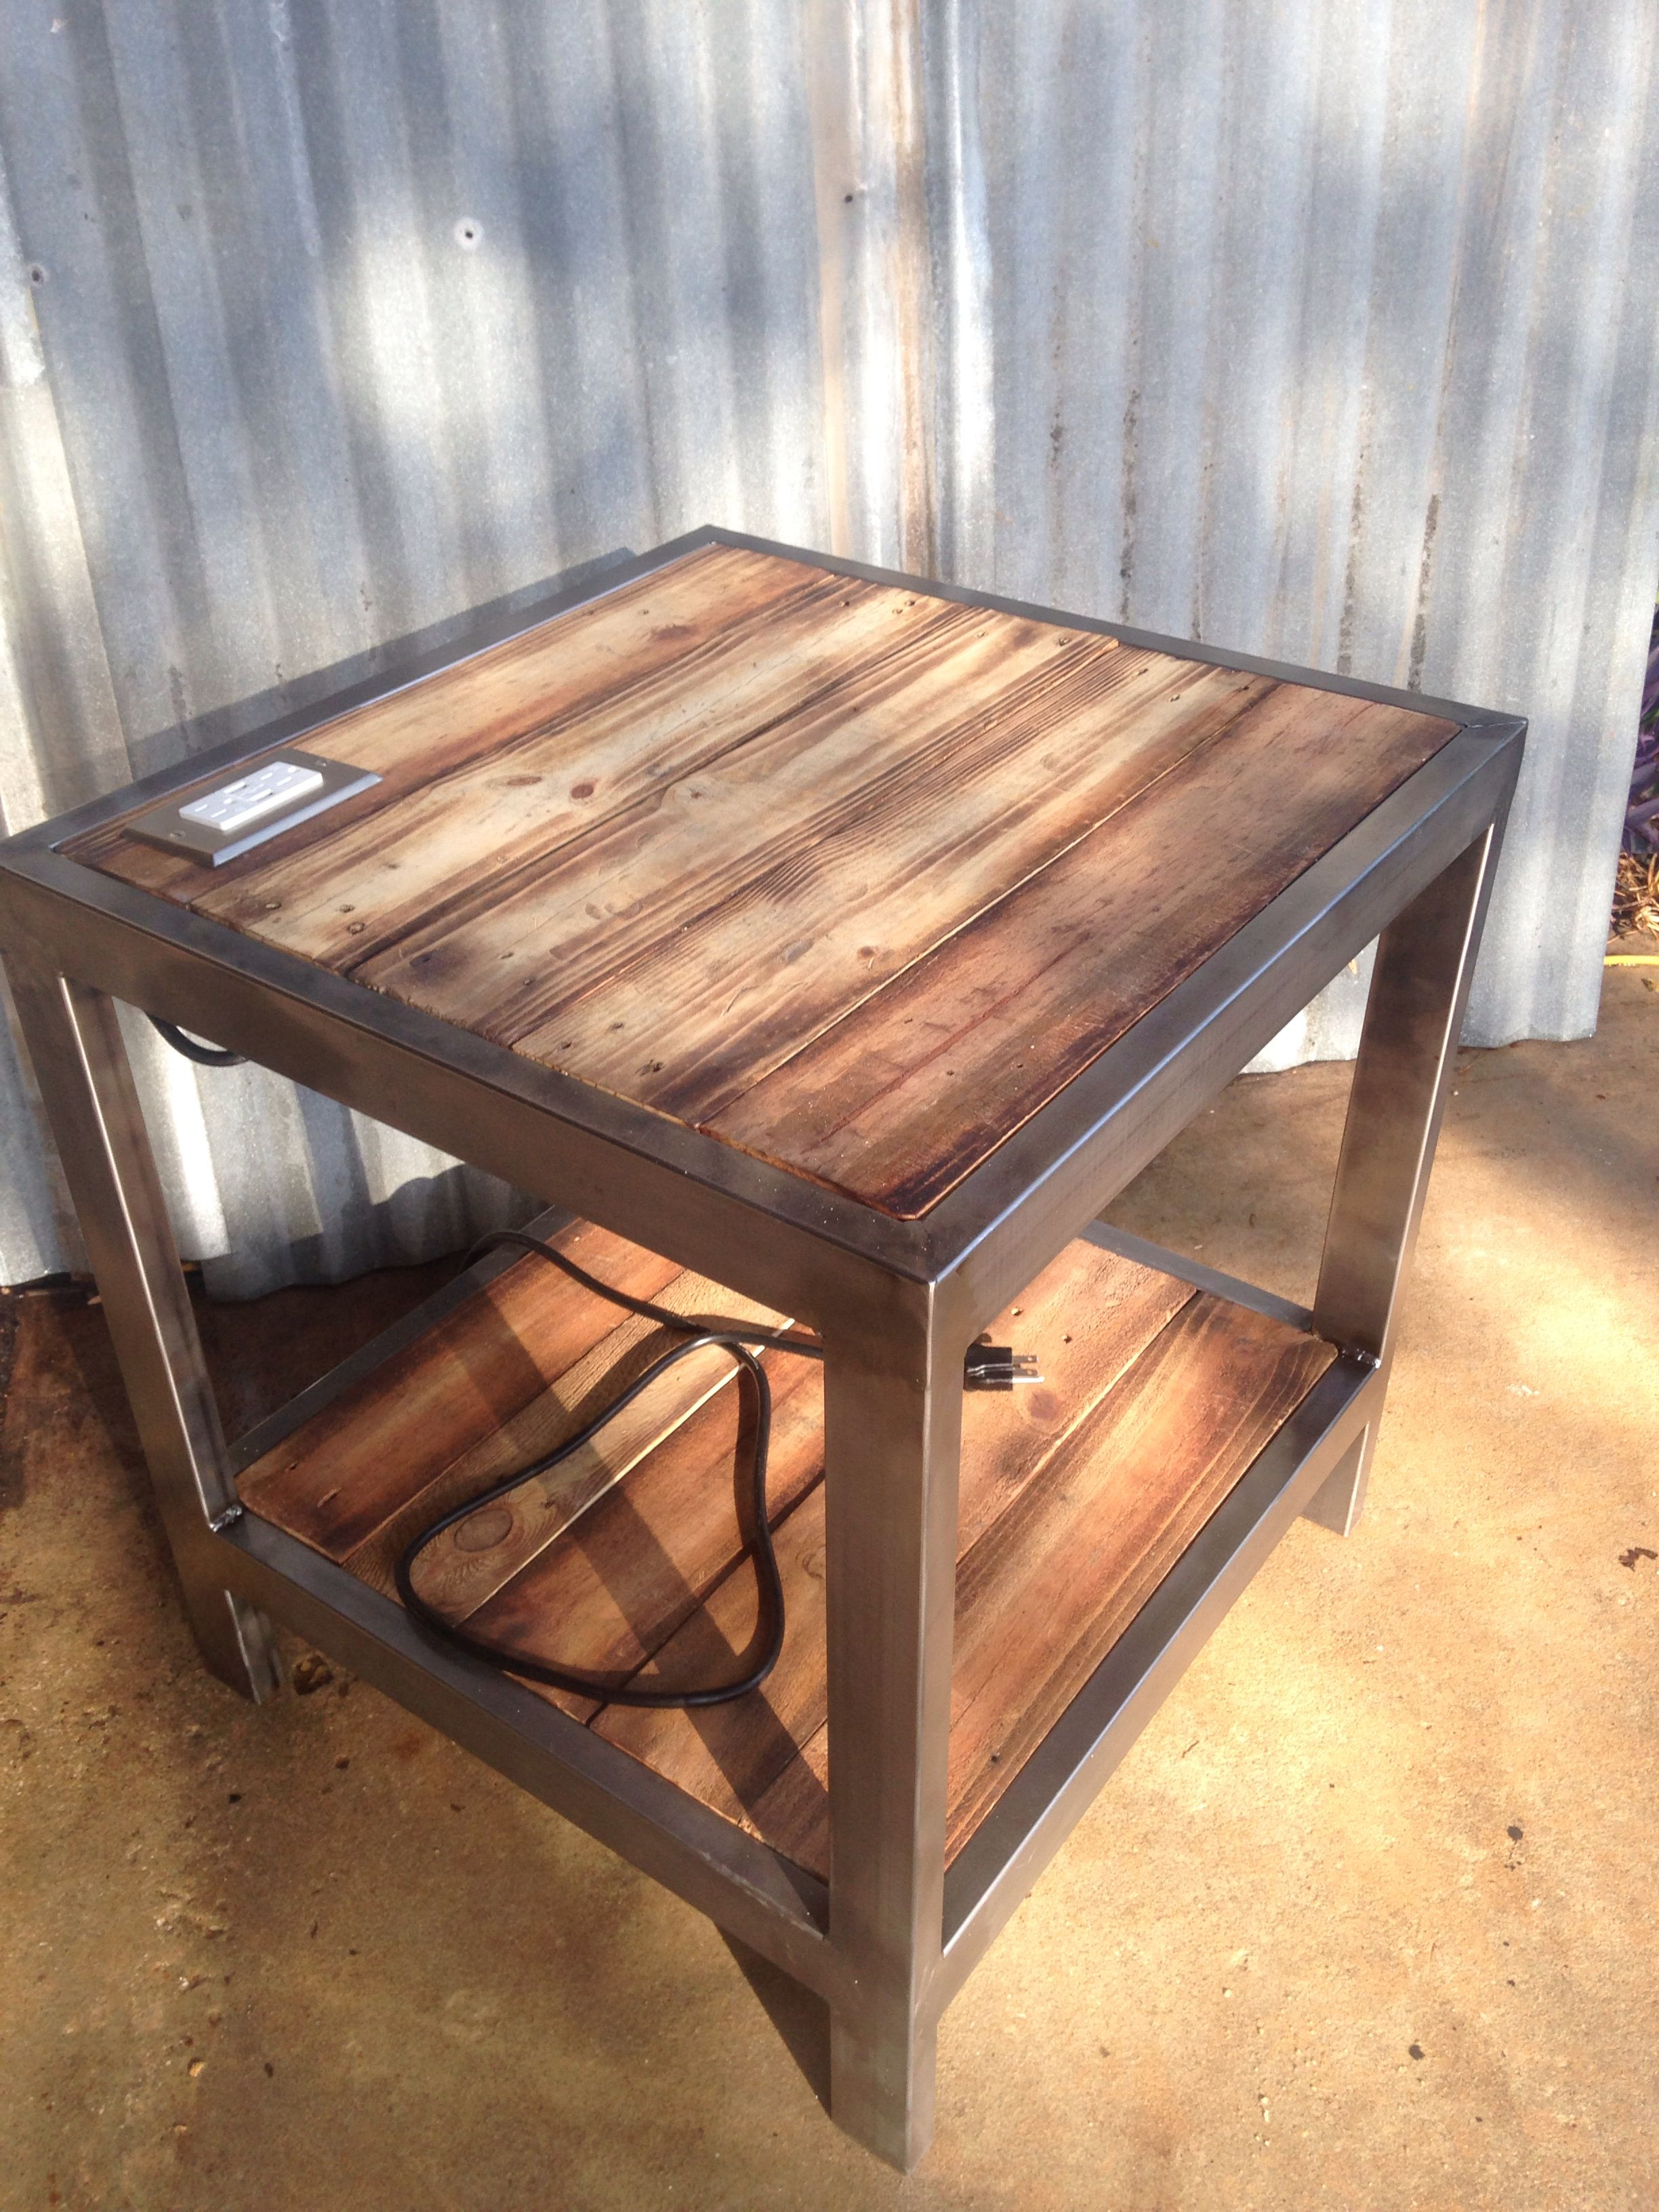 End Table With Built In Plug W Usb Ports Rustic Living Room